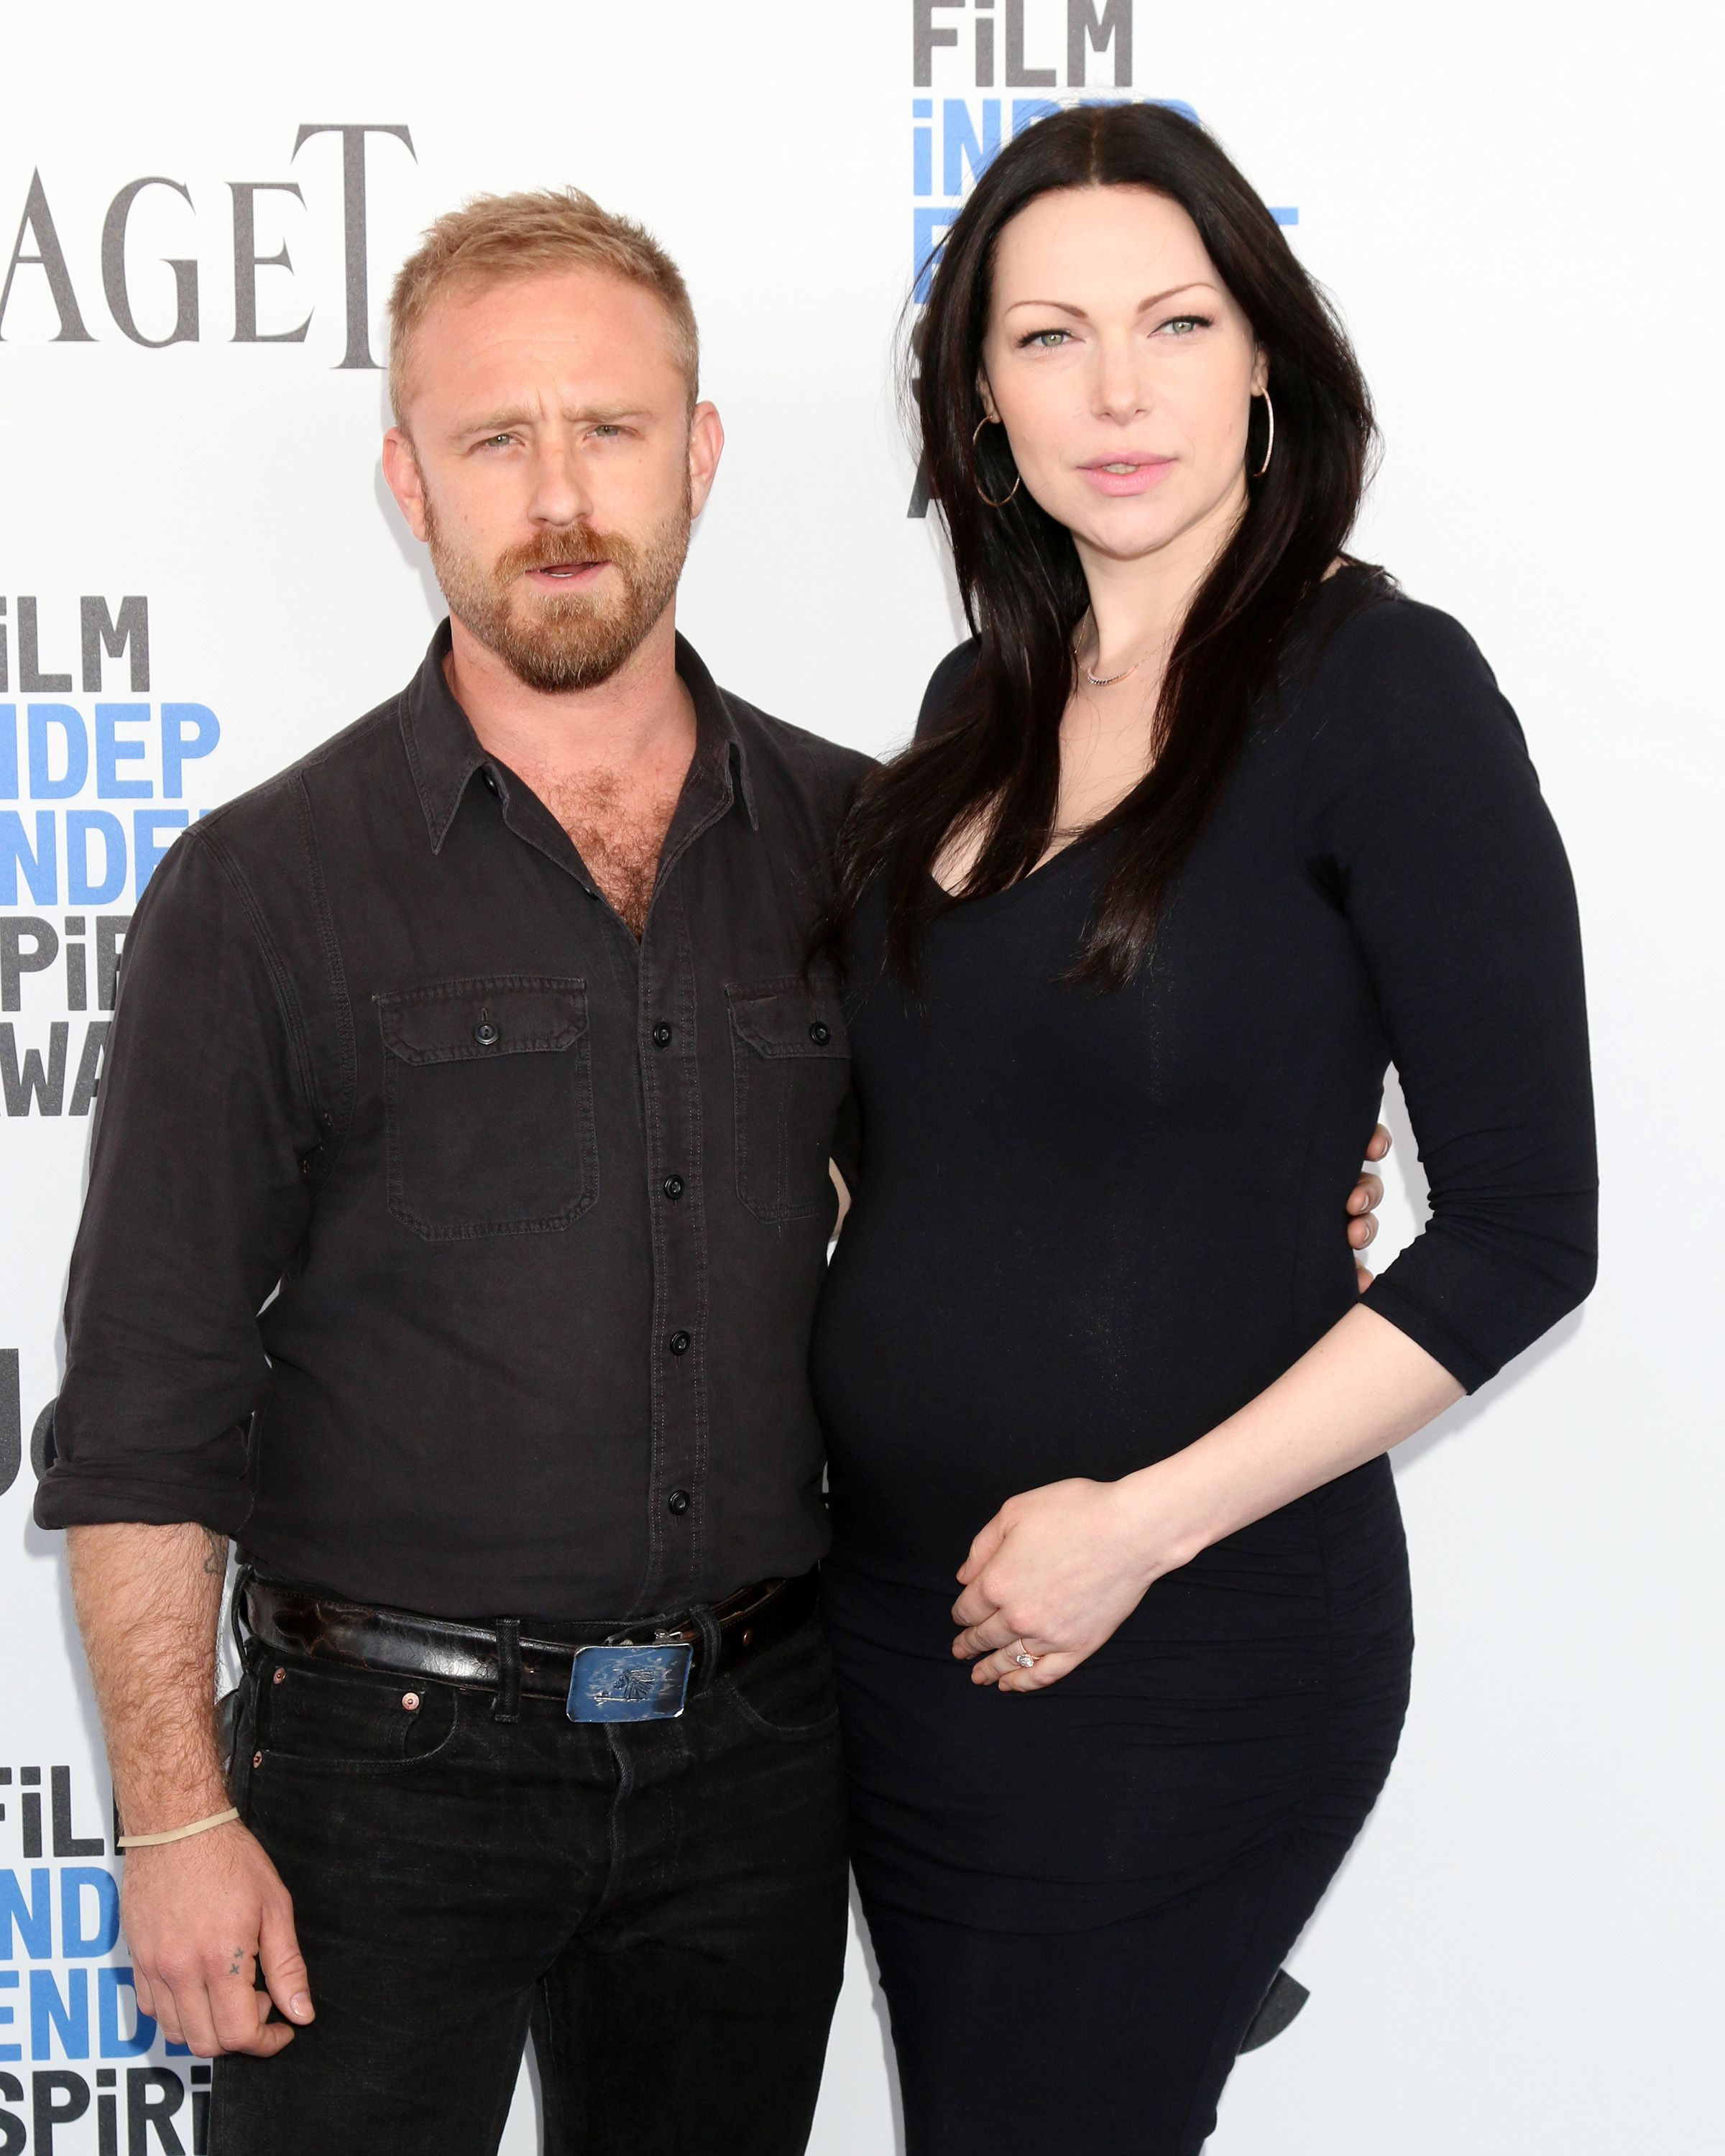 Ben Foster and a pregnant Laura Prepon pose together at an event.